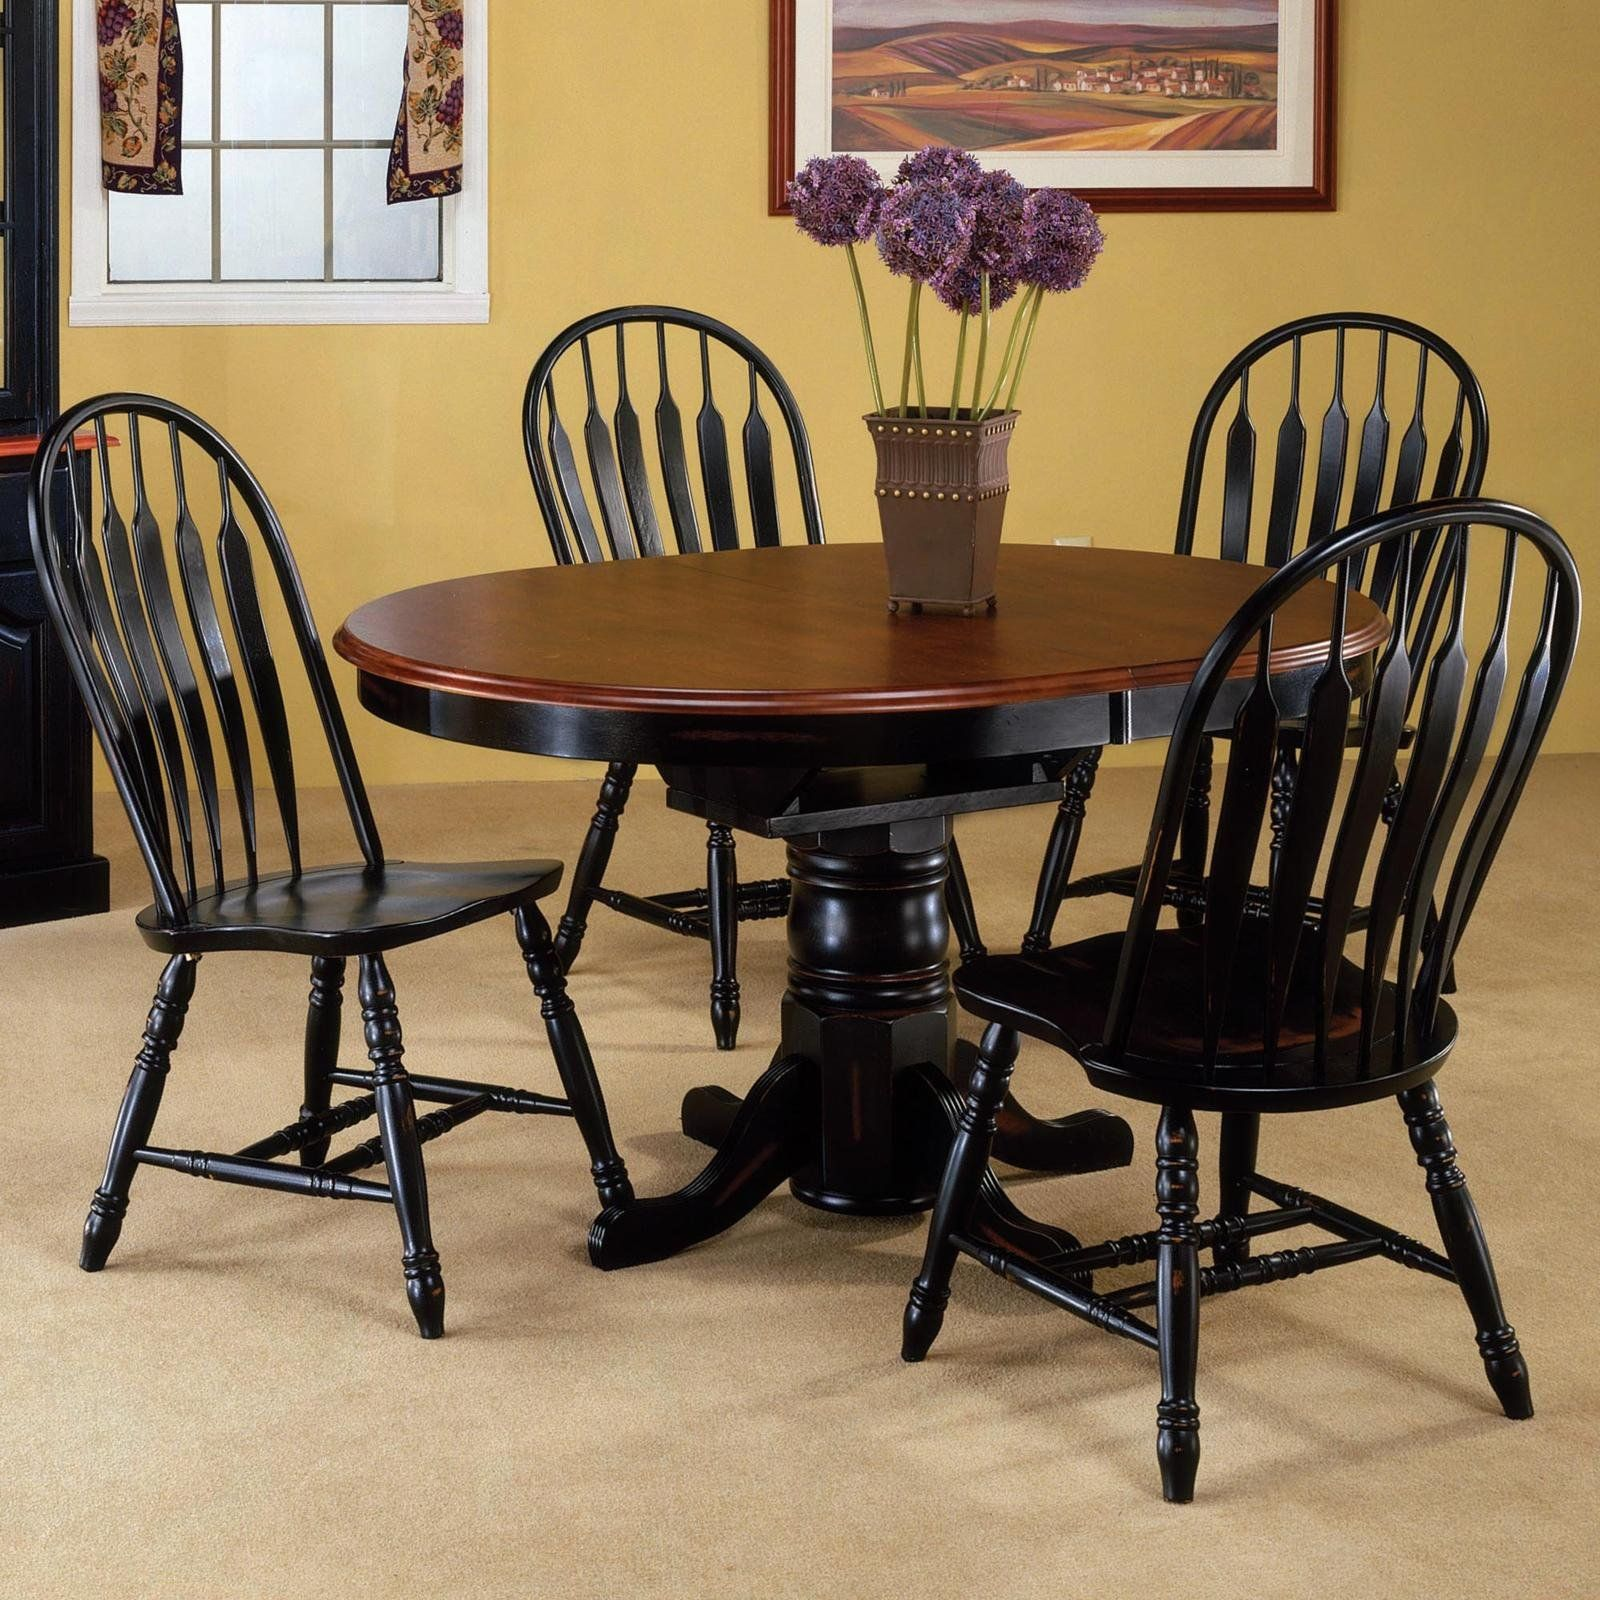 Oval Kitchen Table And Chairs: Table May Work In Our Kitchen, Much Less Expensive Than